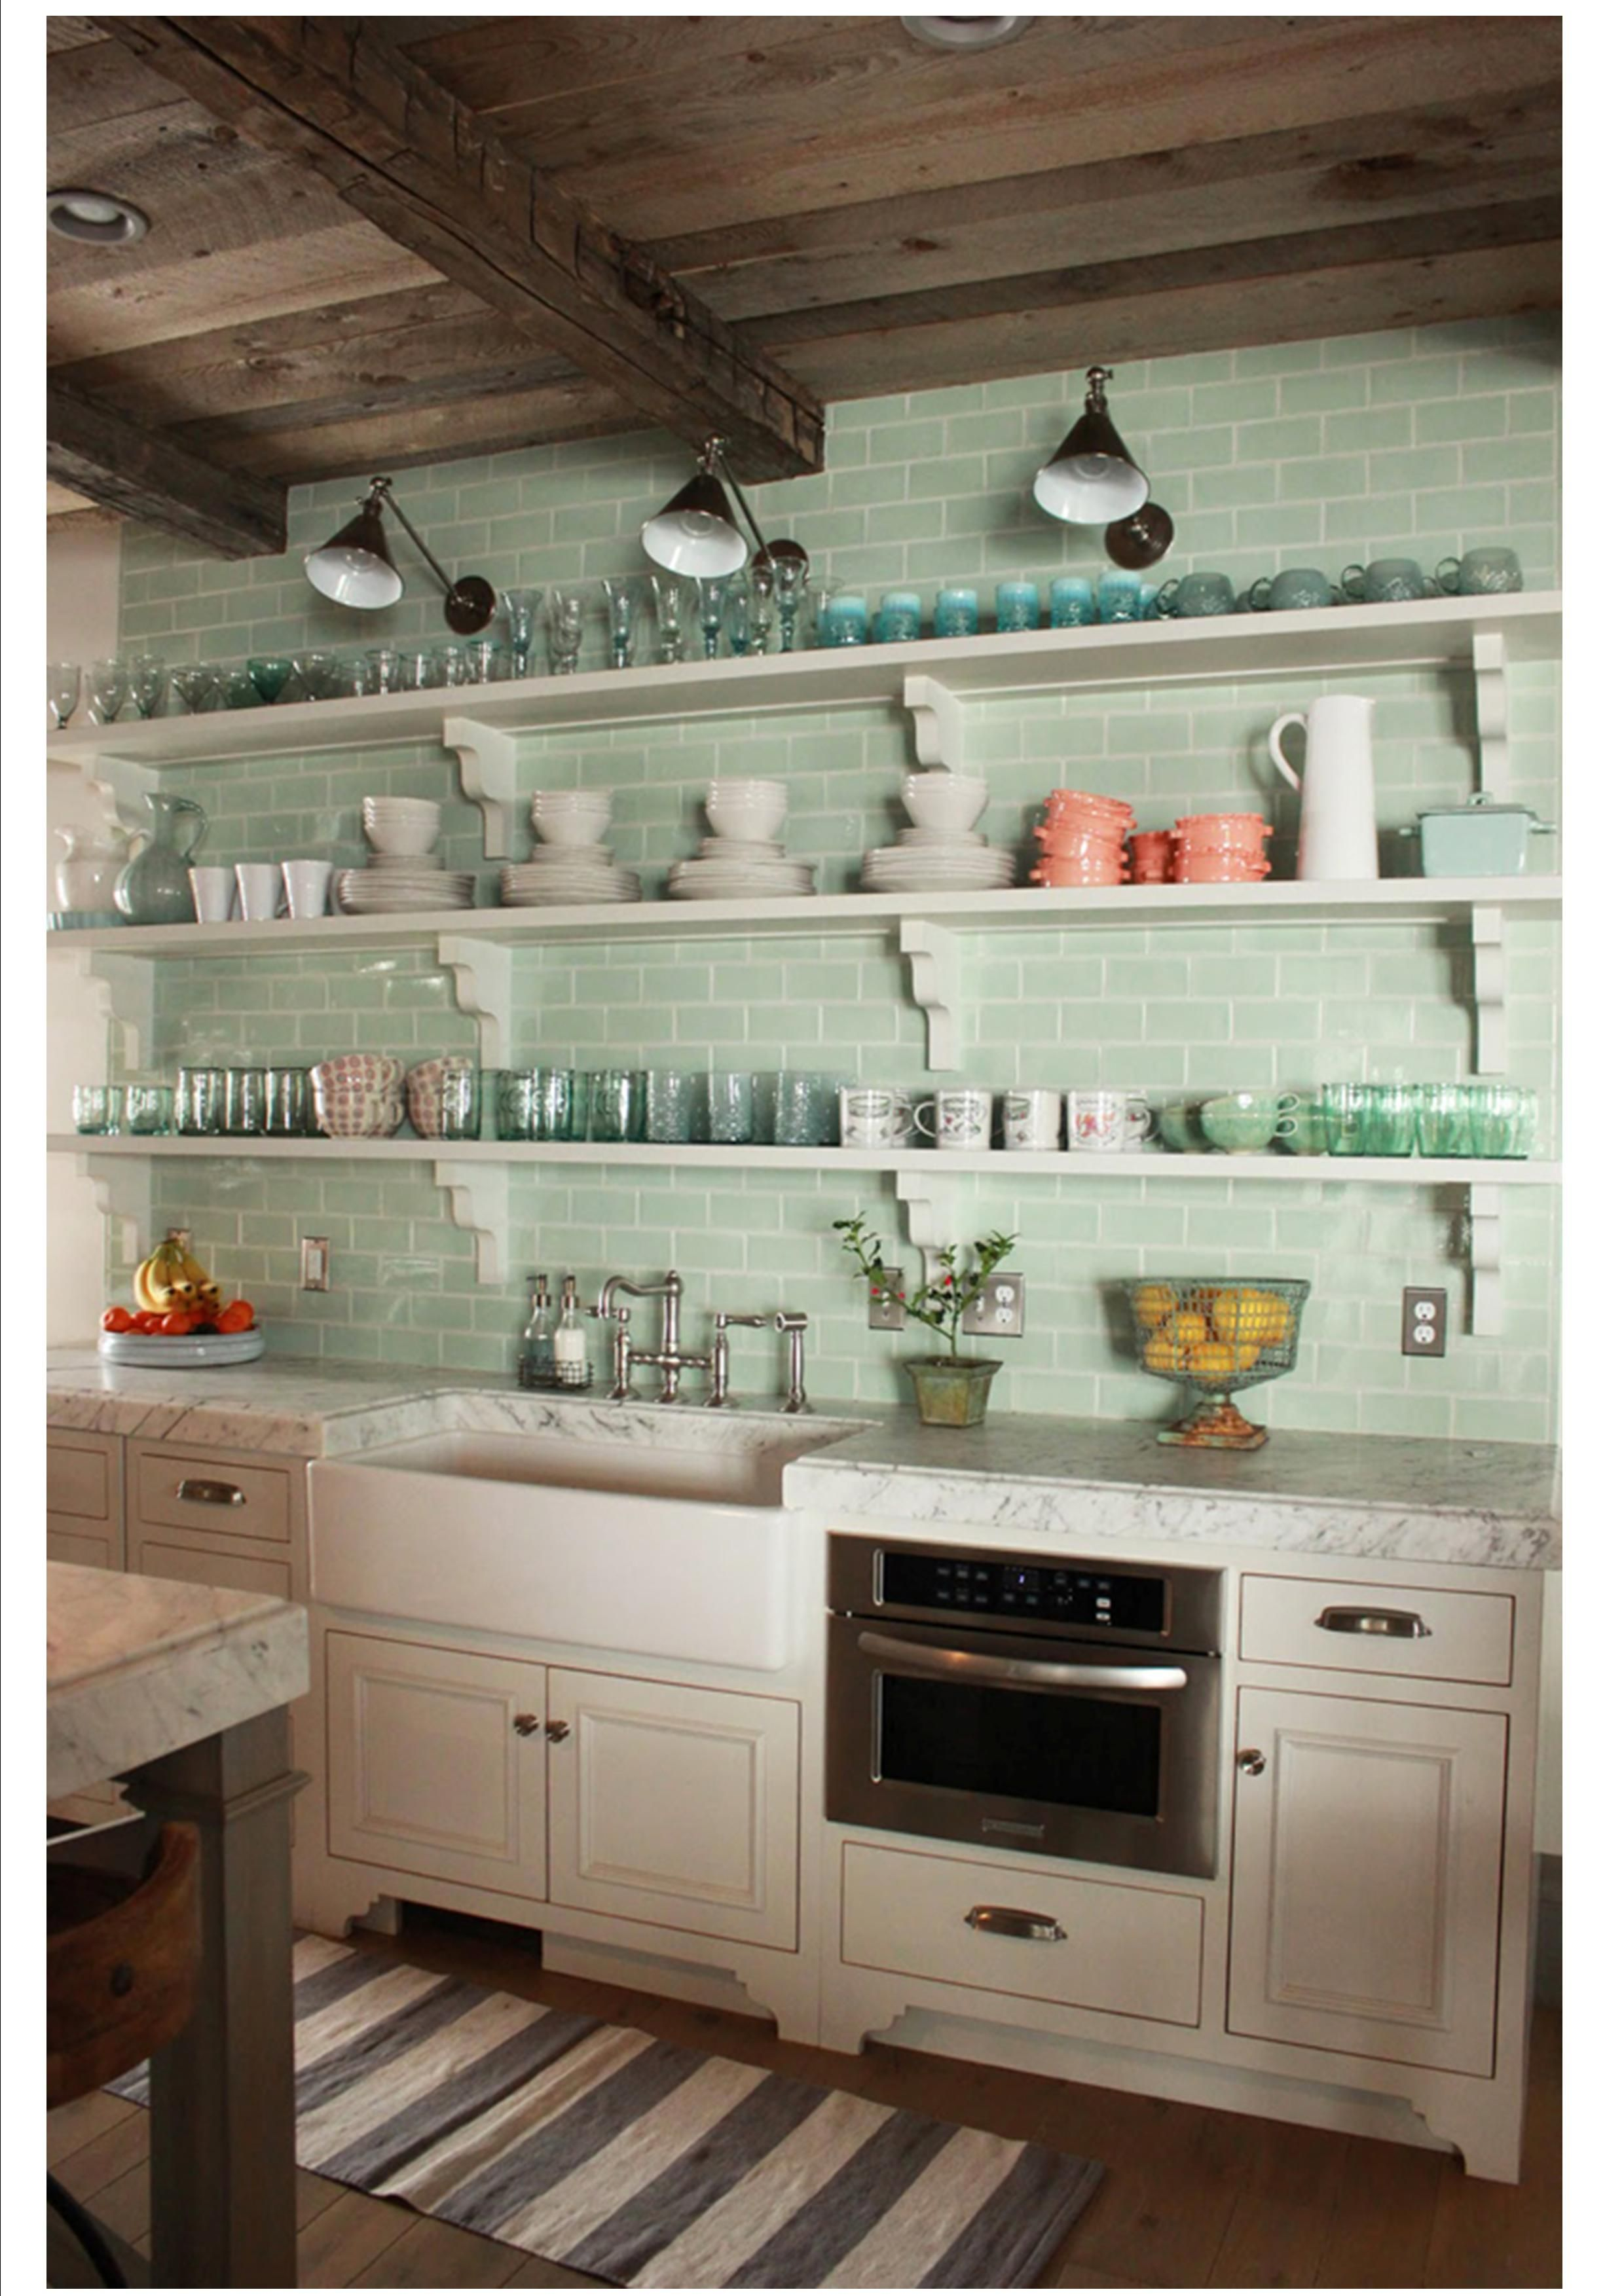 Amazing Tiles Home Kitchens Kitchen Inspirations Mint Kitchen